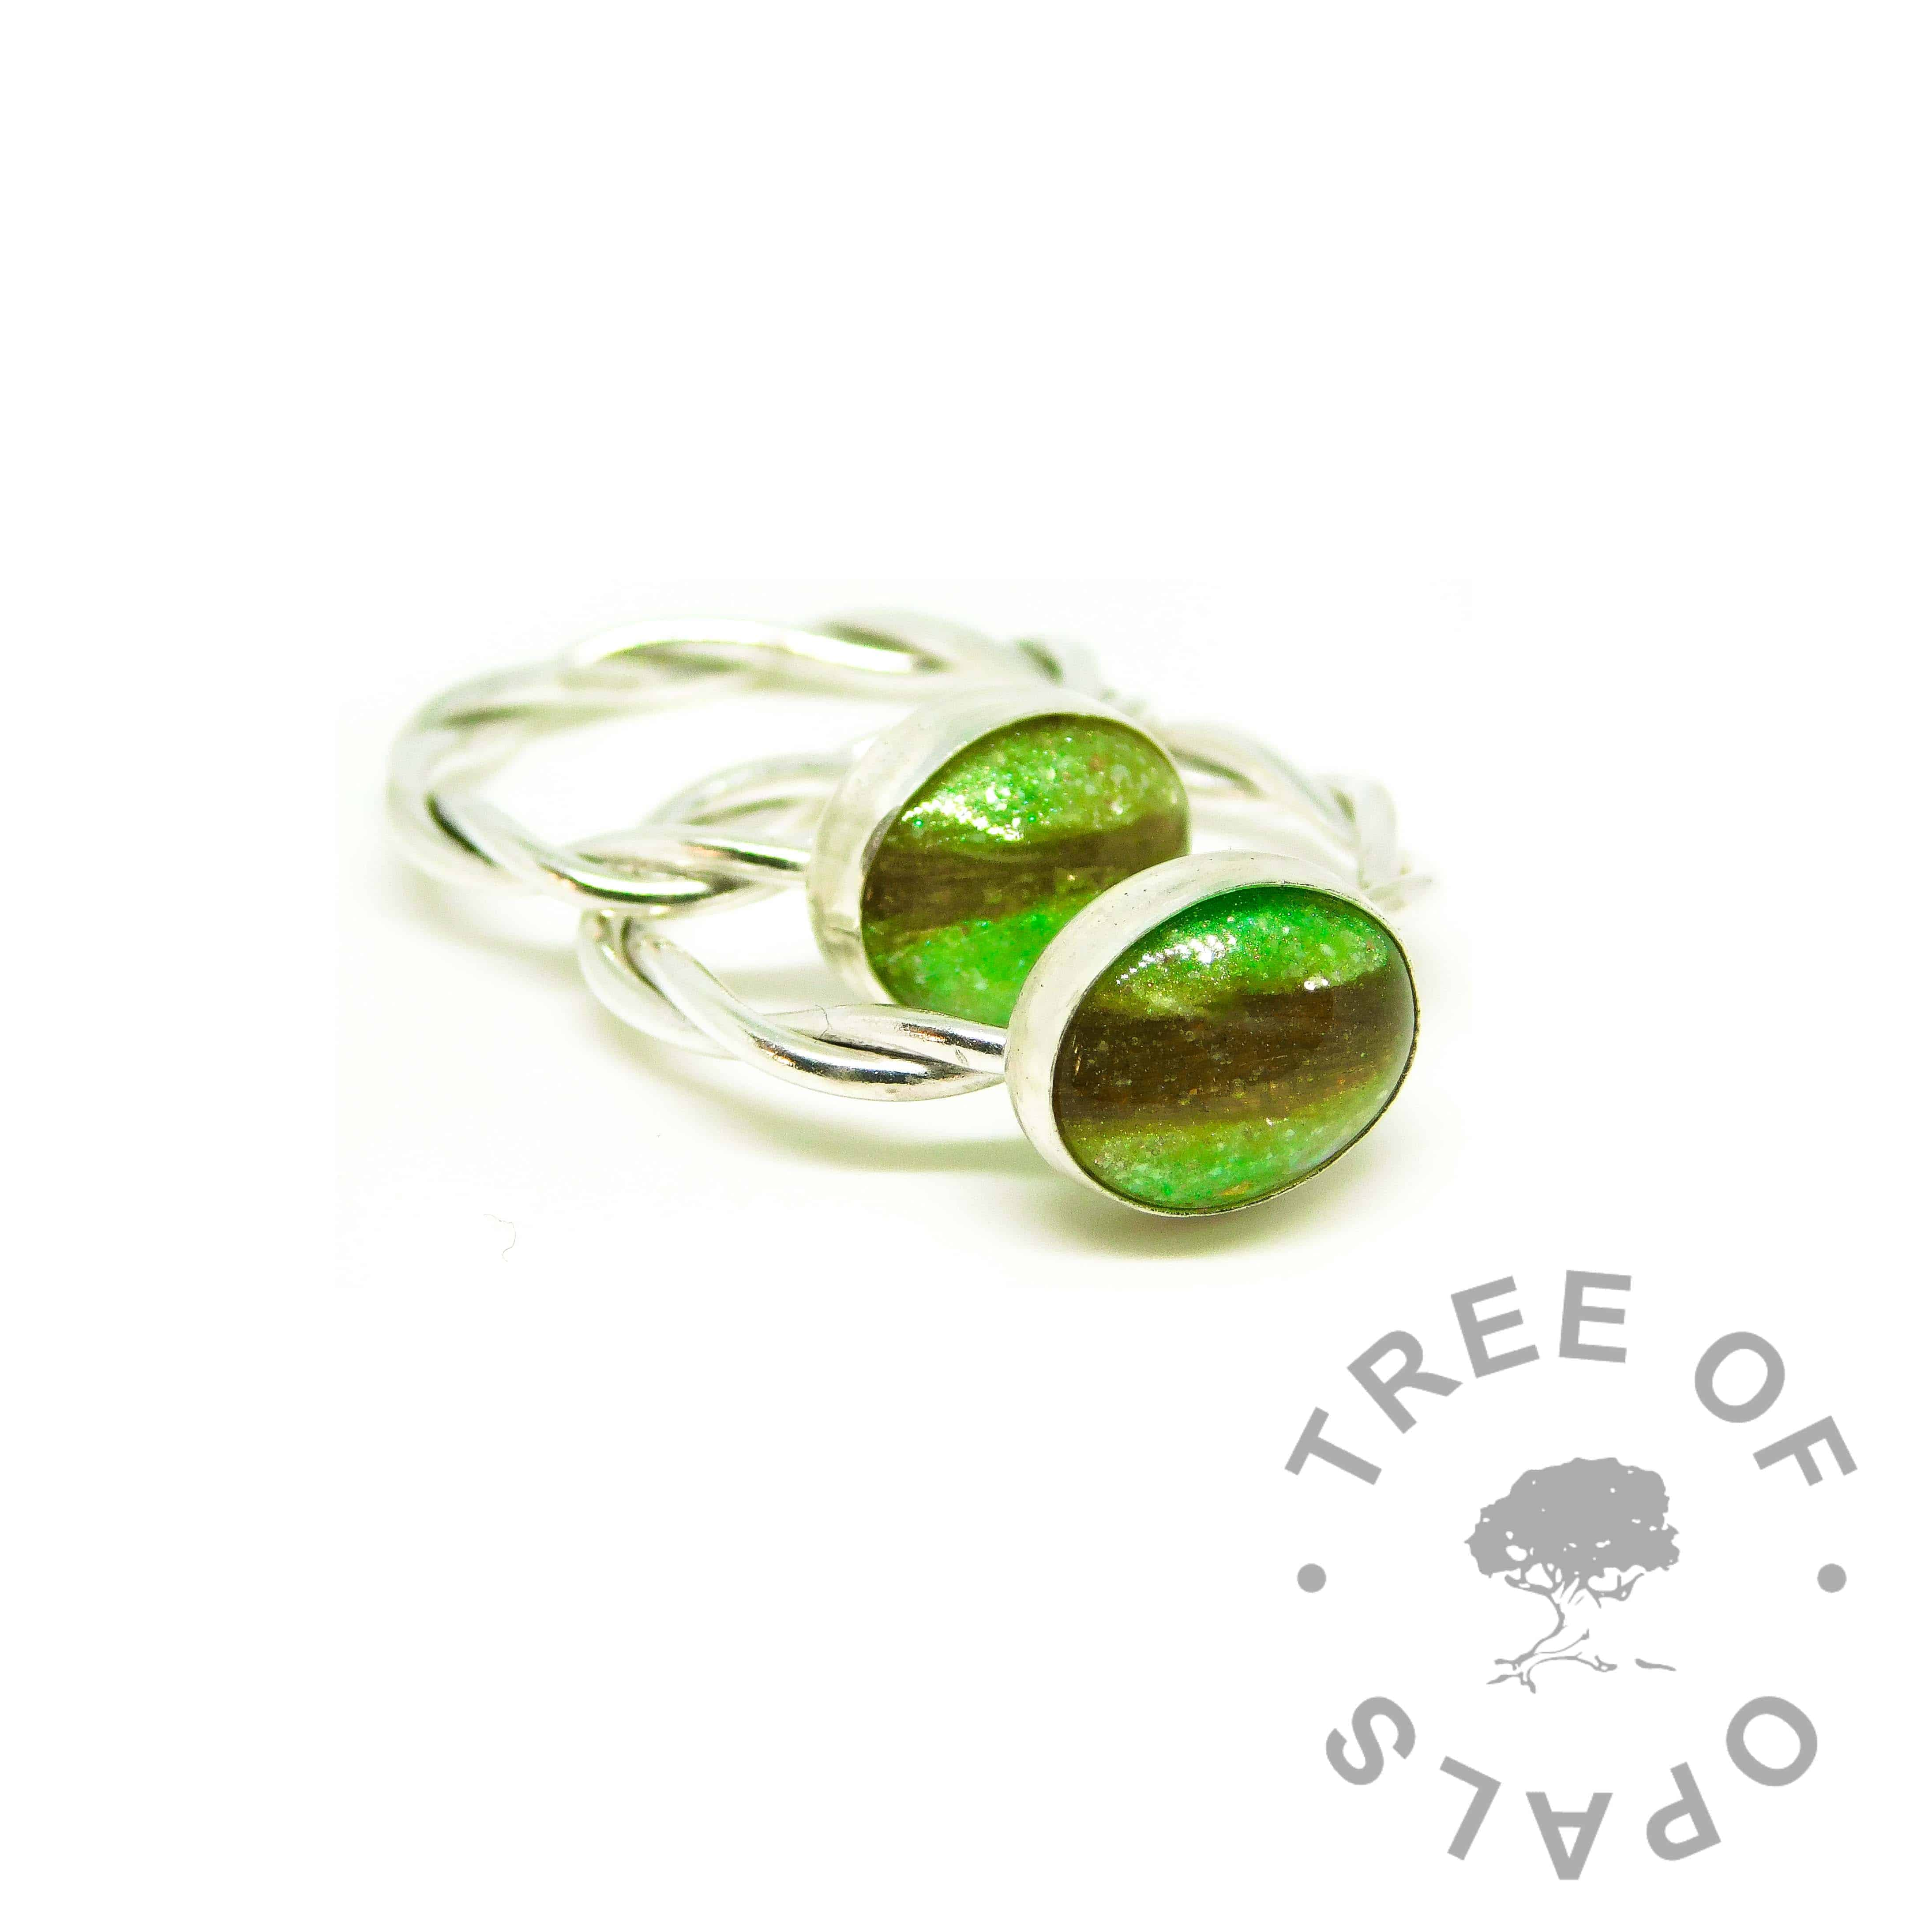 green hair ring duo, basilisk green resin sparkle mix, twisted wire Argentium silver bands